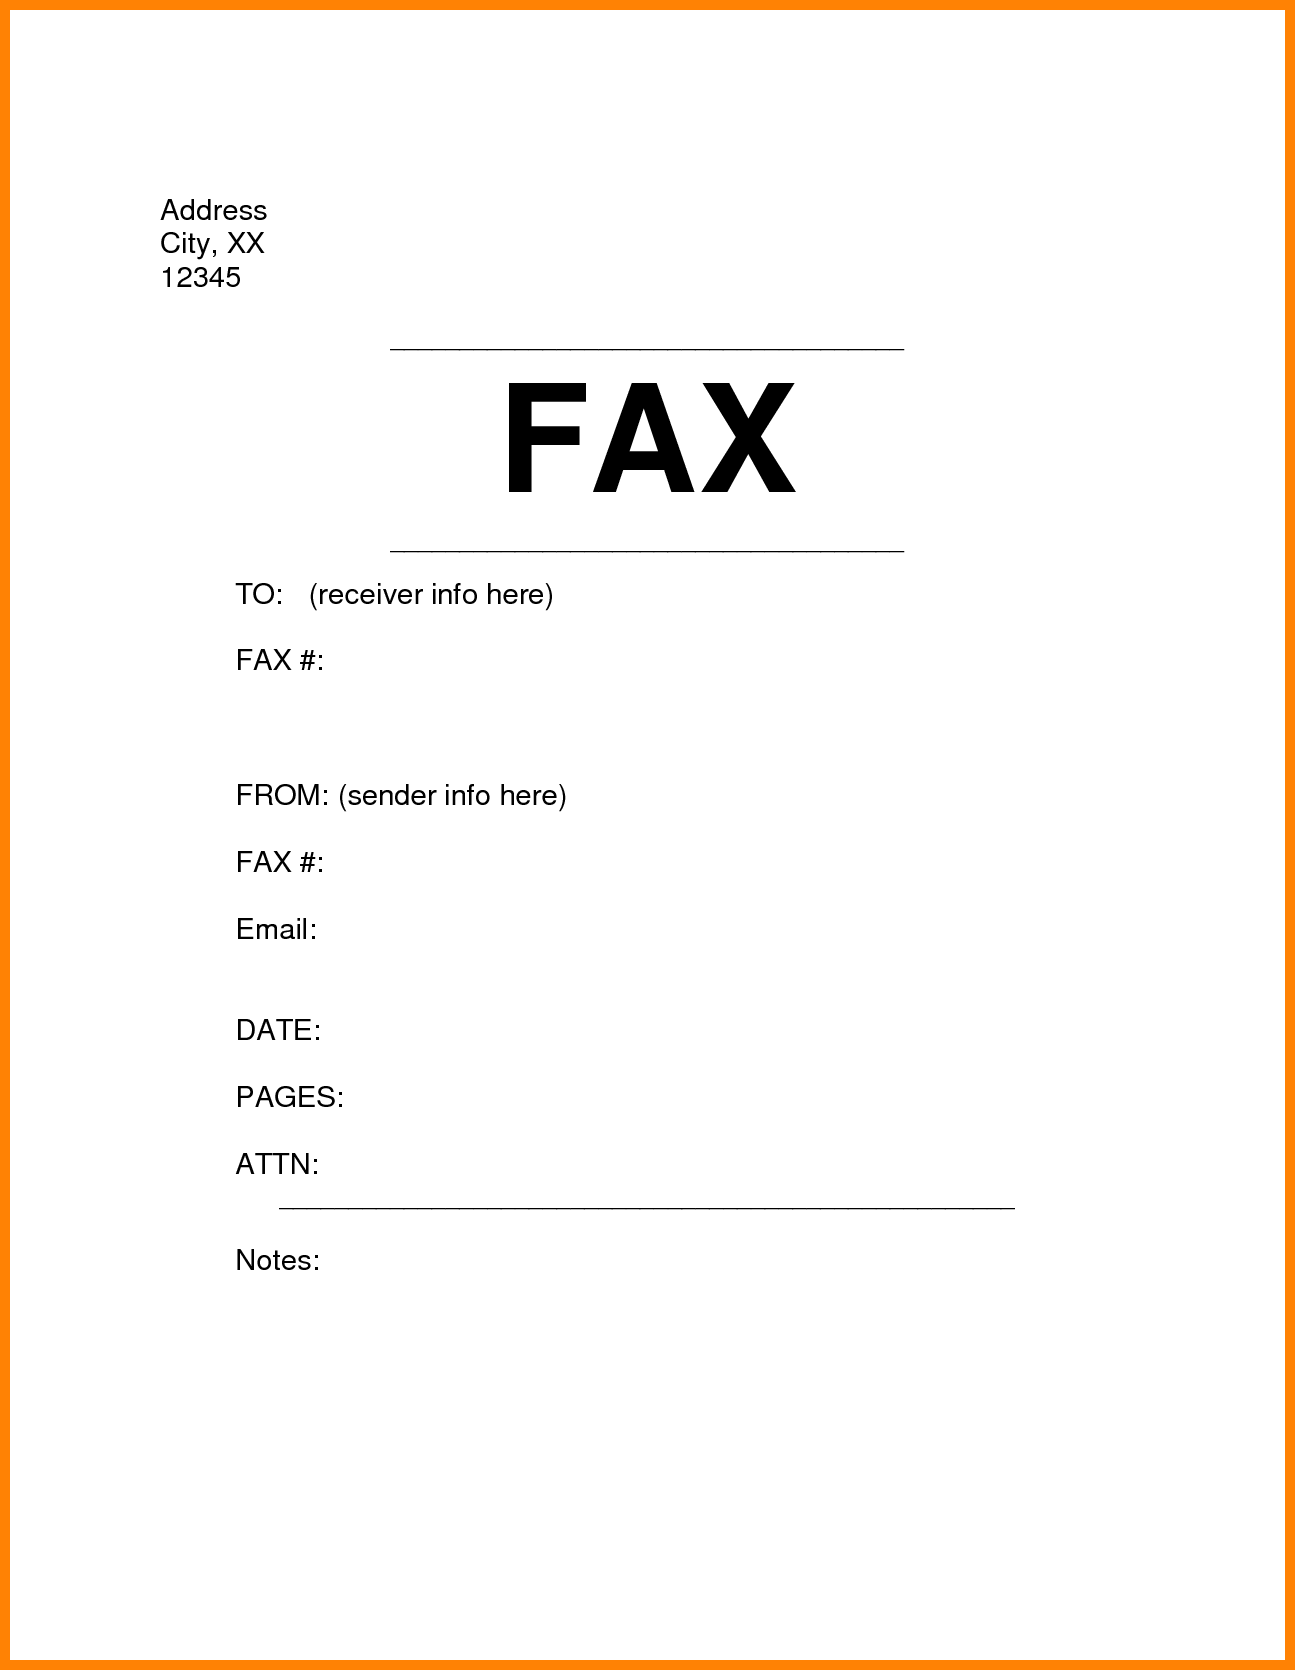 Fax Cover Sheet Template Blank